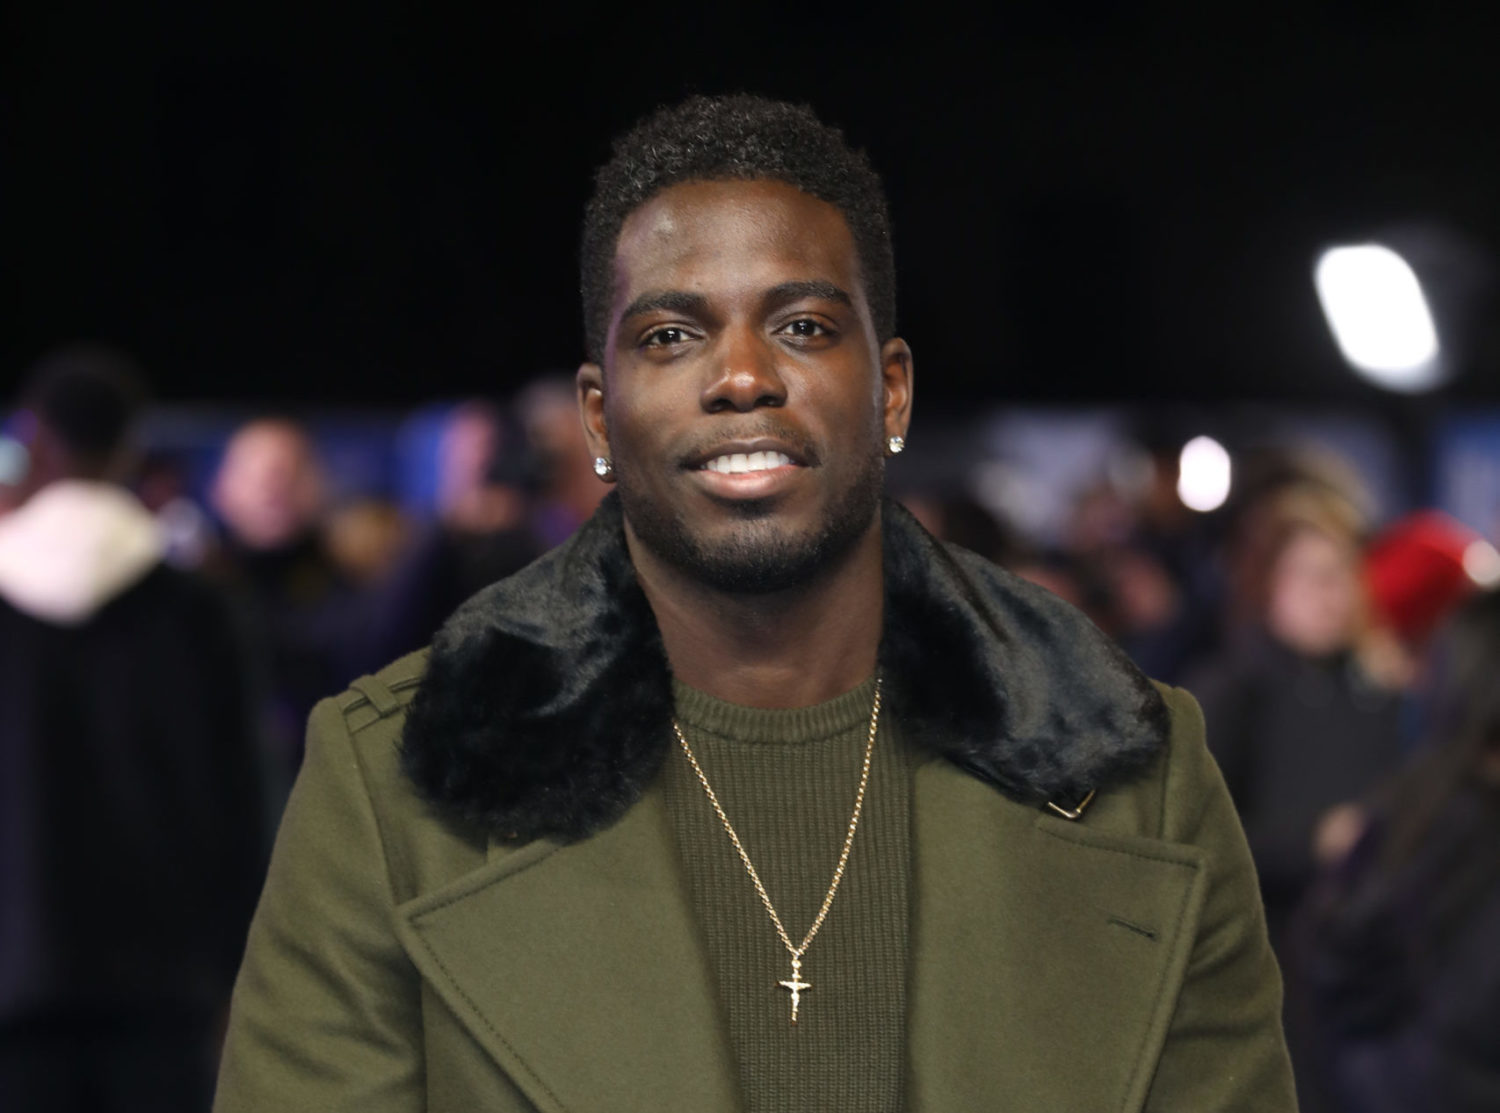 Love Island's Marcel Somerville reveals he 'nearly died' after coronavirus hospital dash